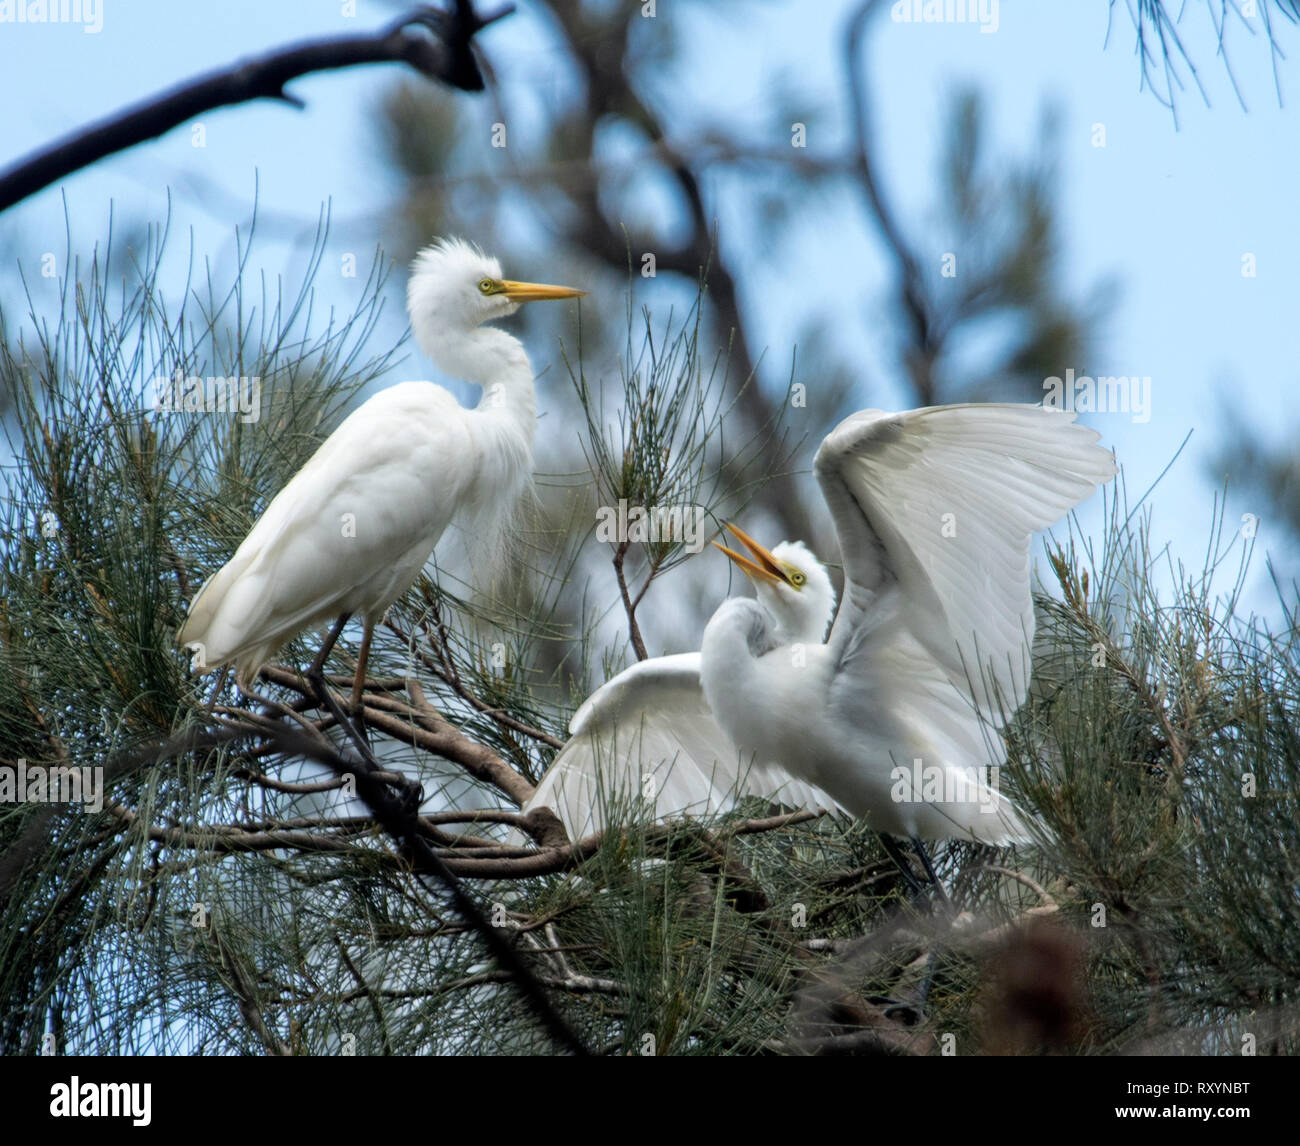 Australian plumed / intermediate egret, Ardea intermedia with fledgling / chick with wings outstretched among foliage of trees and against blue sky - Stock Image